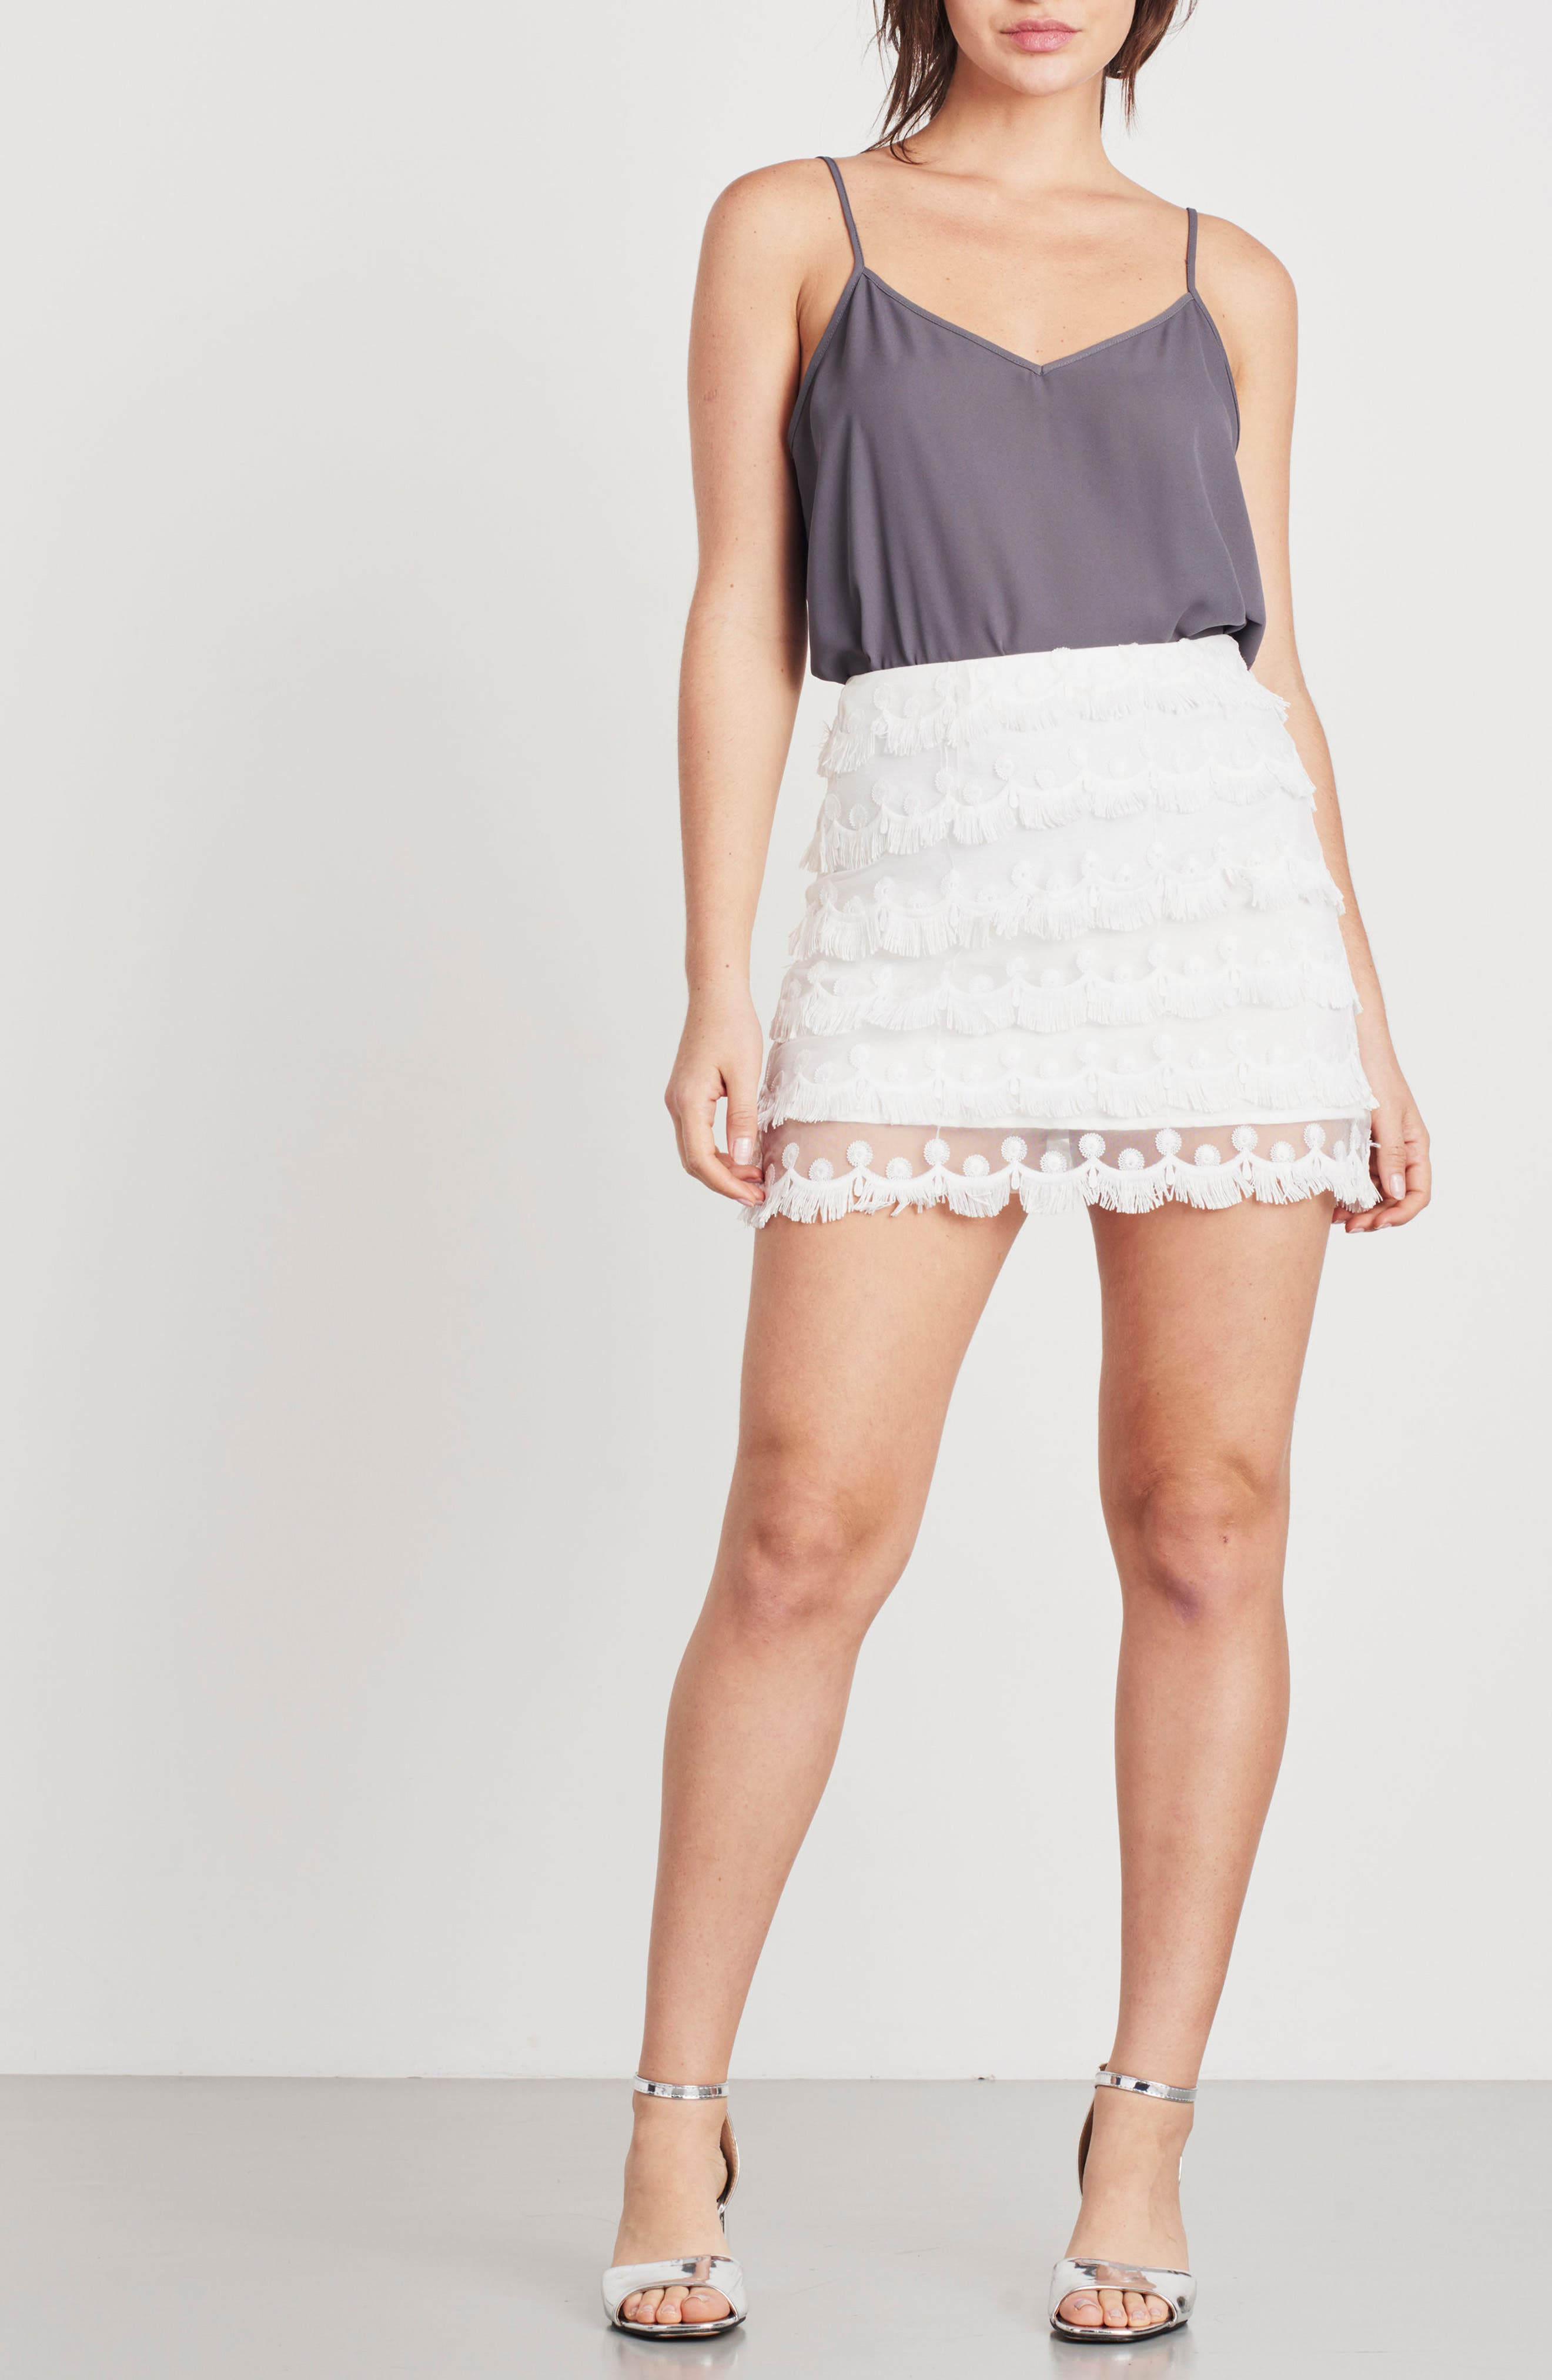 3D Lace Fringed Miniskirt,                             Alternate thumbnail 2, color,                             White